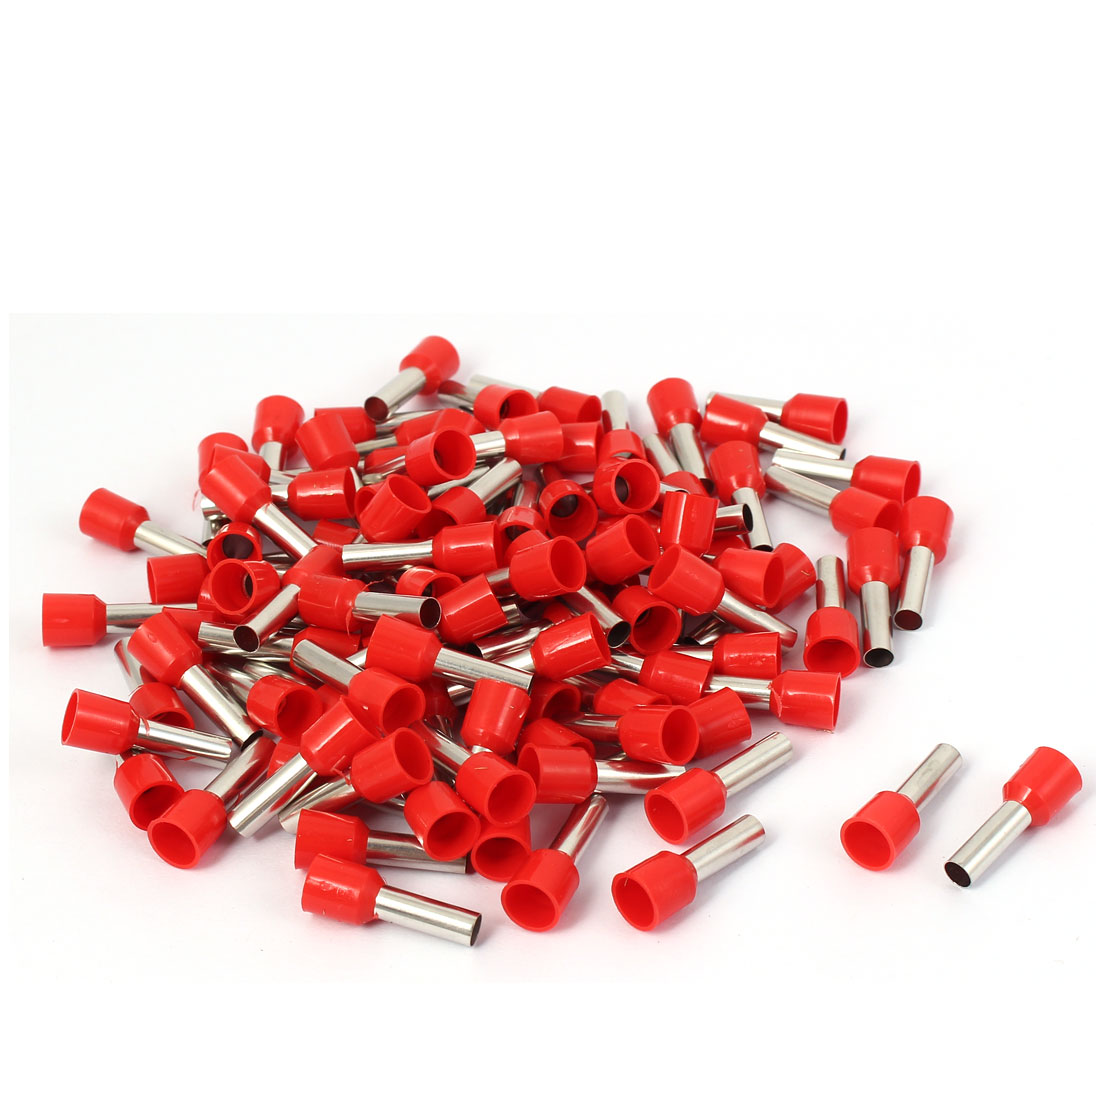 E6012 Tube Style Cable Wire Ends Sleeve Crimp Insulated Terminal 200pcs